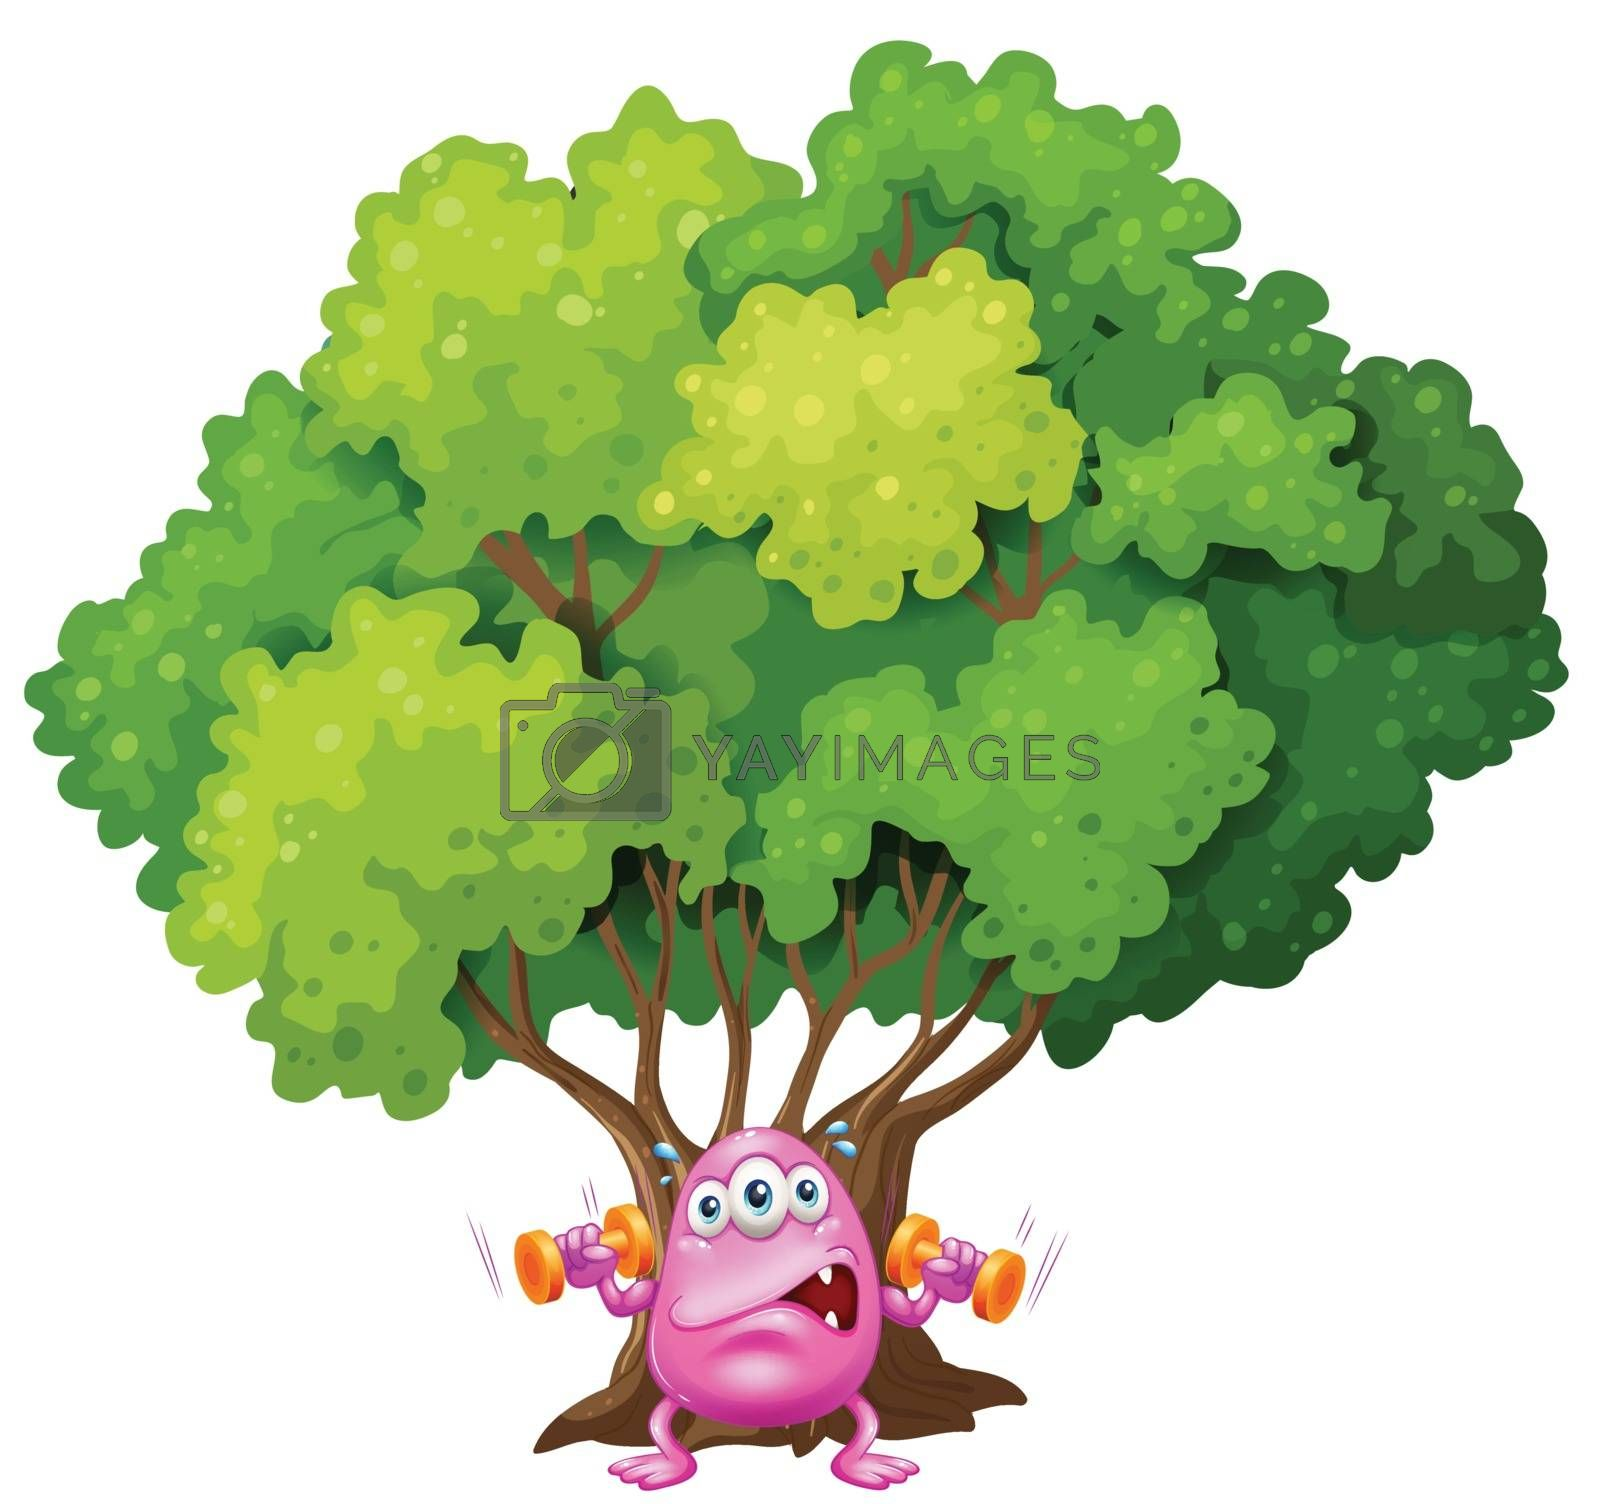 Illustration of a pink monster exercising under the tree on a white background